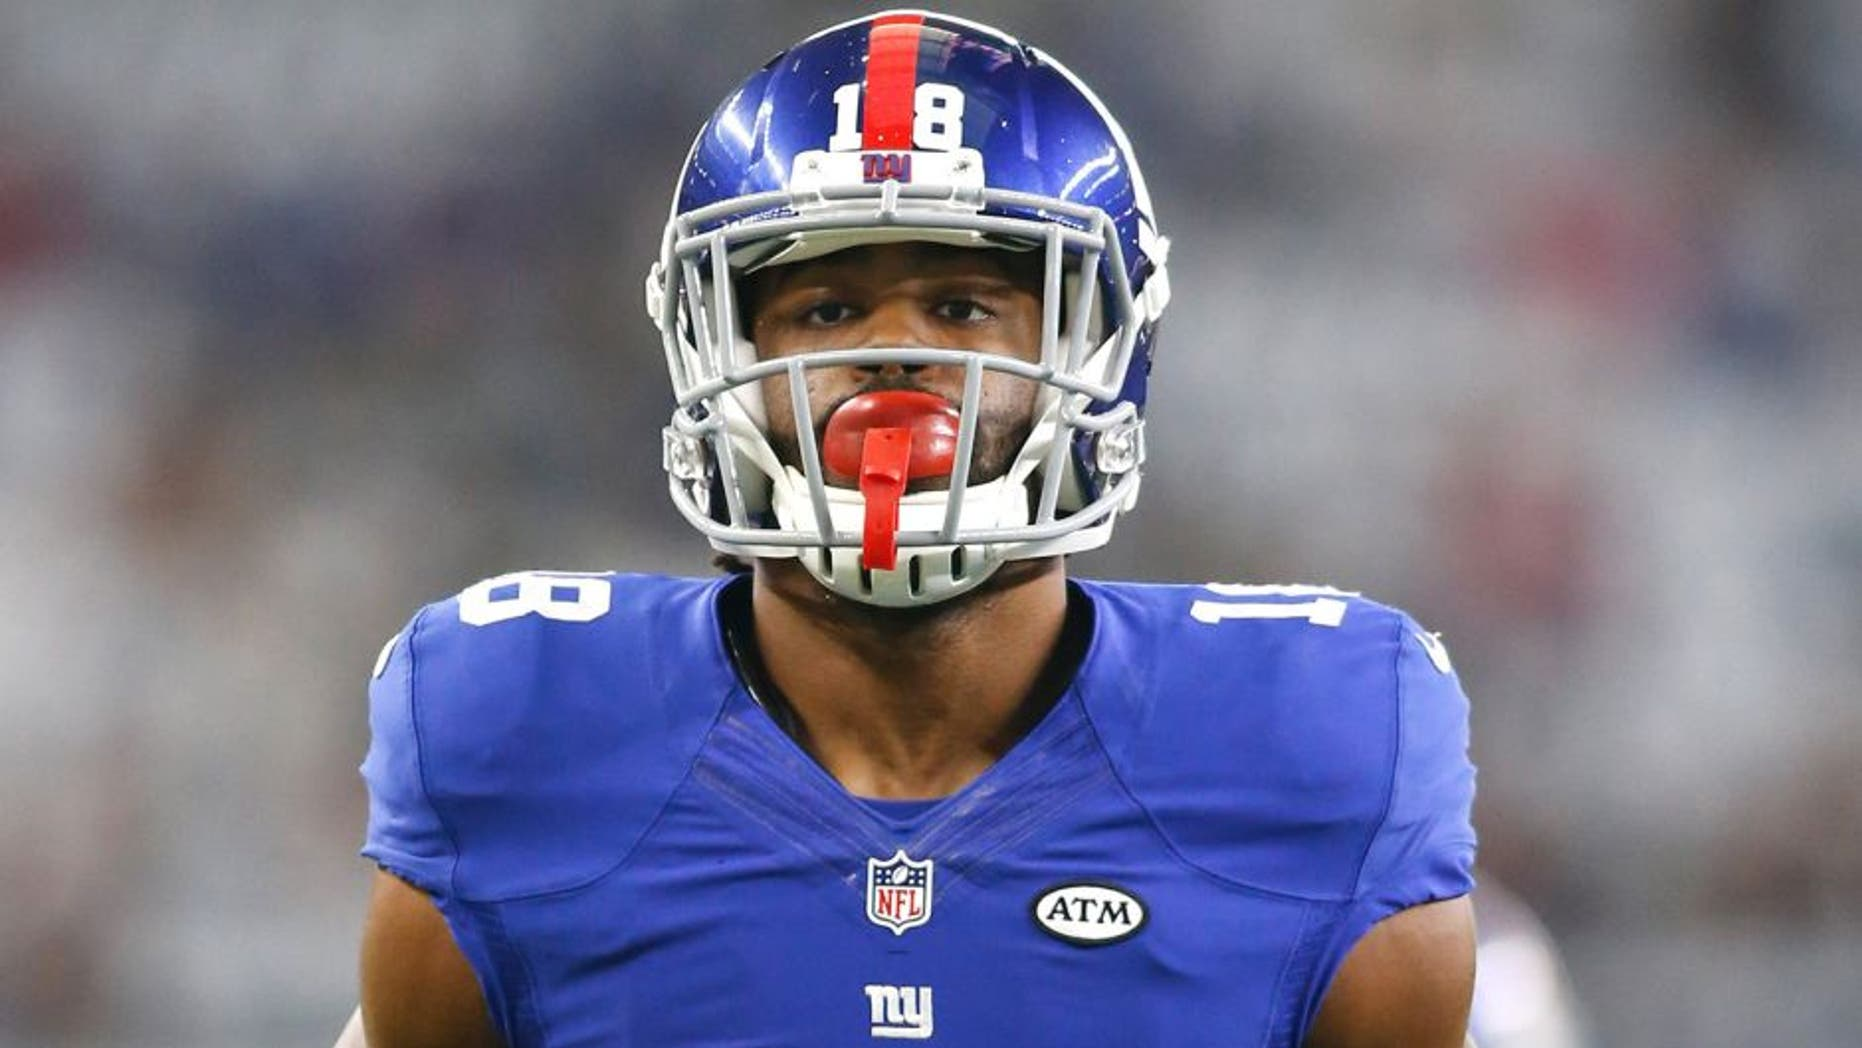 Sep 13, 2015; Arlington, TX, USA; New York Giants wide receiver Geremy Davis (18) runs with the ball before the game against the Dallas Cowboys at AT&T Stadium. Dallas won 27-26. Mandatory Credit: Tim Heitman-USA TODAY Sports